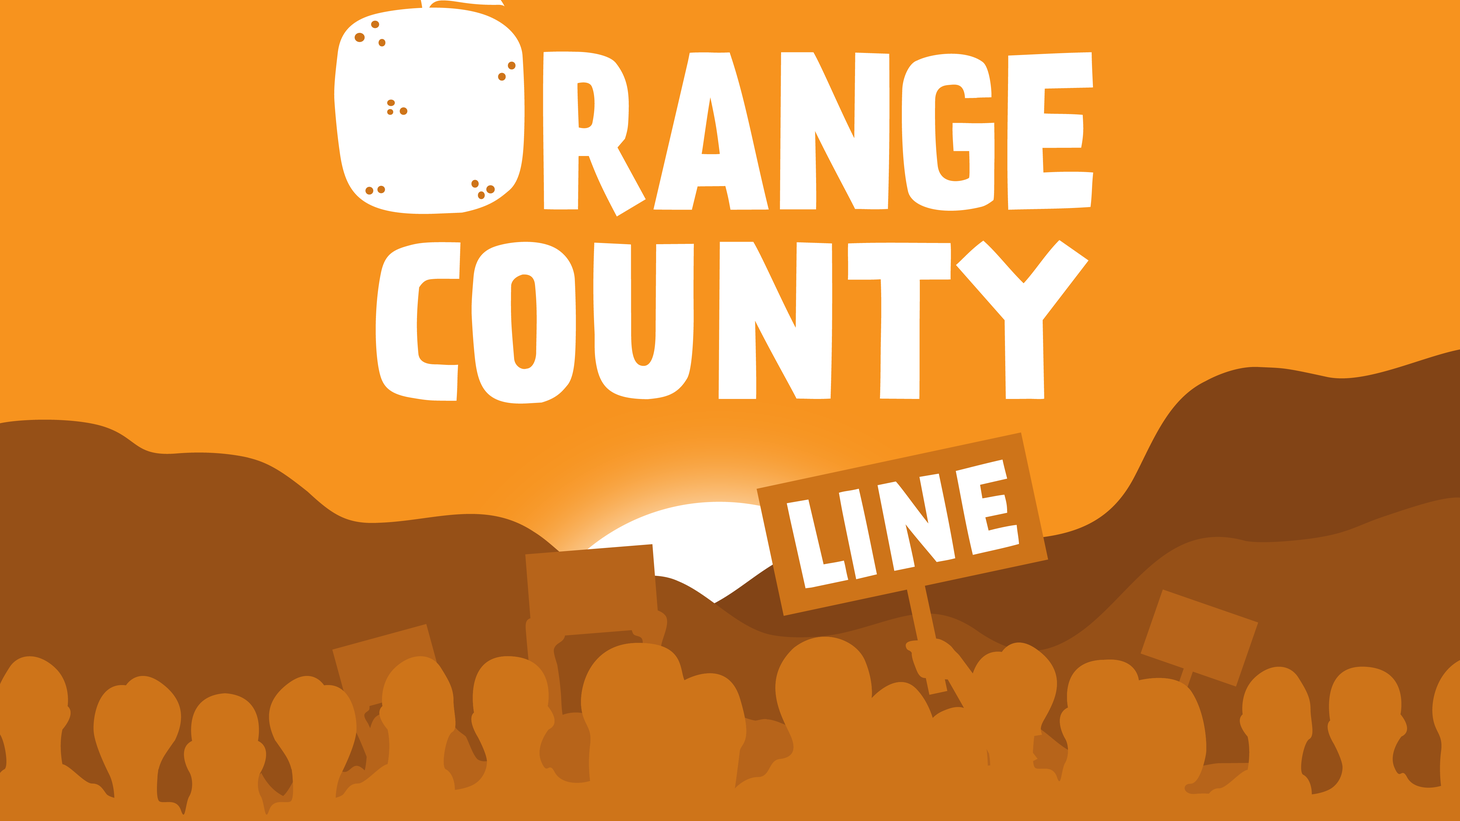 Over a decade ago, Orange County voters approved a measure clearing the way for a transformation of the former El Toro Marine base into a Great Park that backers claimed would rival Central, Griffith, AND Golden Gate parks. But all that's there now is repurposed runways, a concert venue, and a giant orange balloon—and a new board majority is threatening to review allegations of cronyism by longtime Irvine politician and the park's most vigorous defender, Larry Agran.